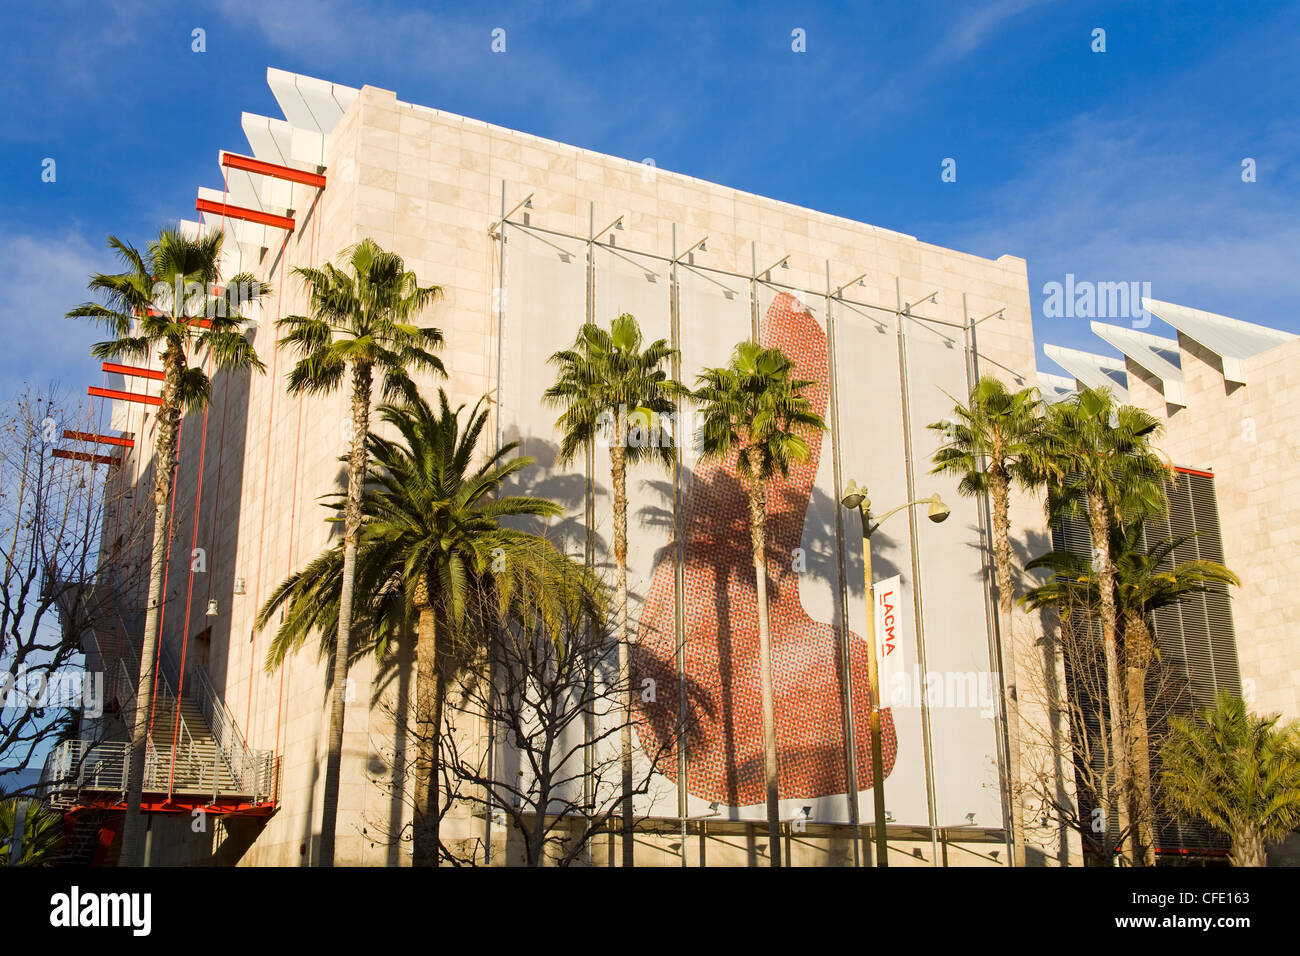 Broad Contemporary Art Museum, Los Angeles County Museum of Art on Wilshire Boulevard, Los Angeles, California, - Stock Image